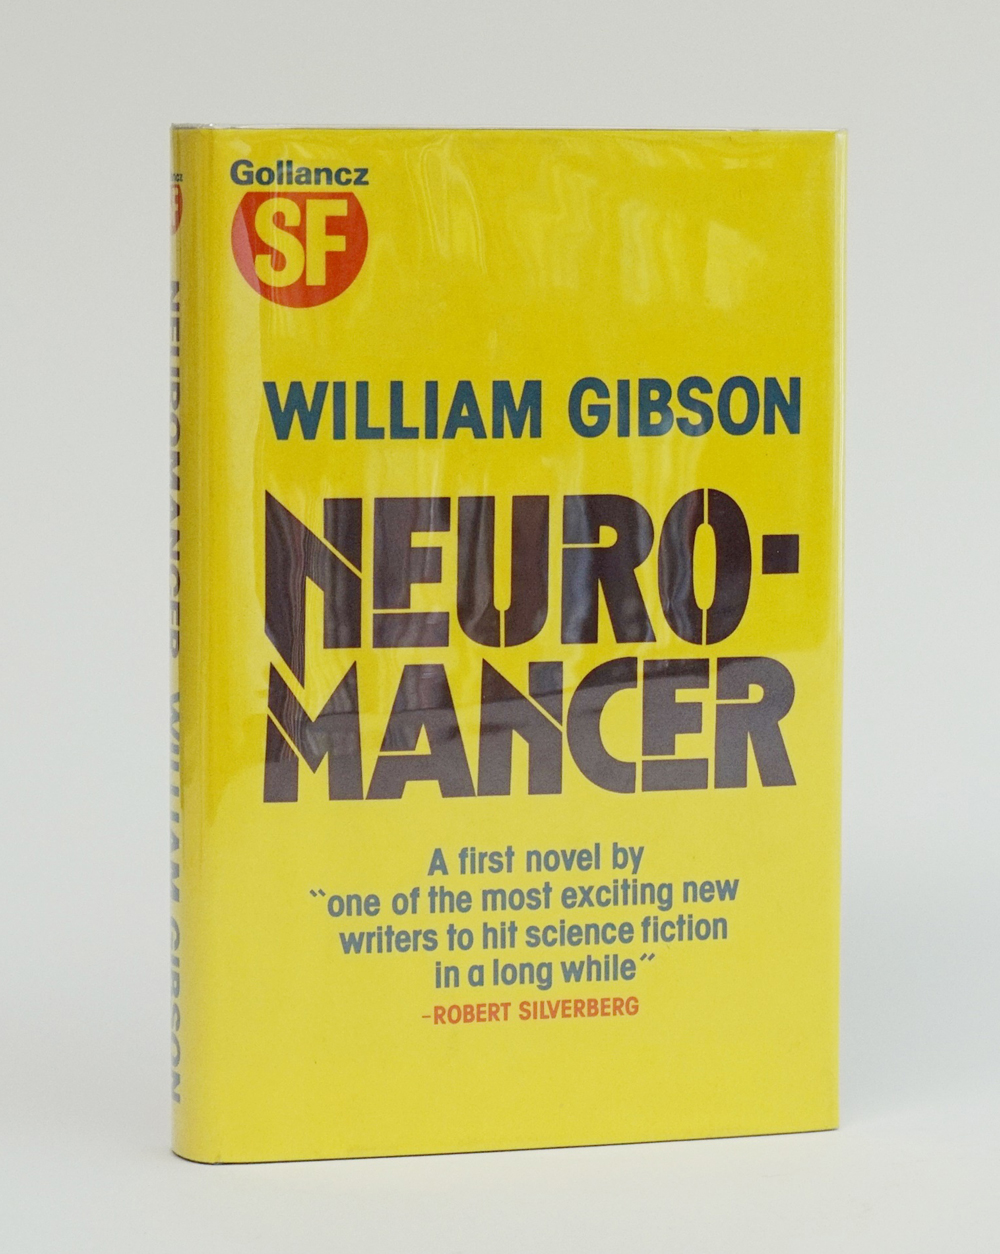 Neuromancer. London: Victor Gollancz, 1984.